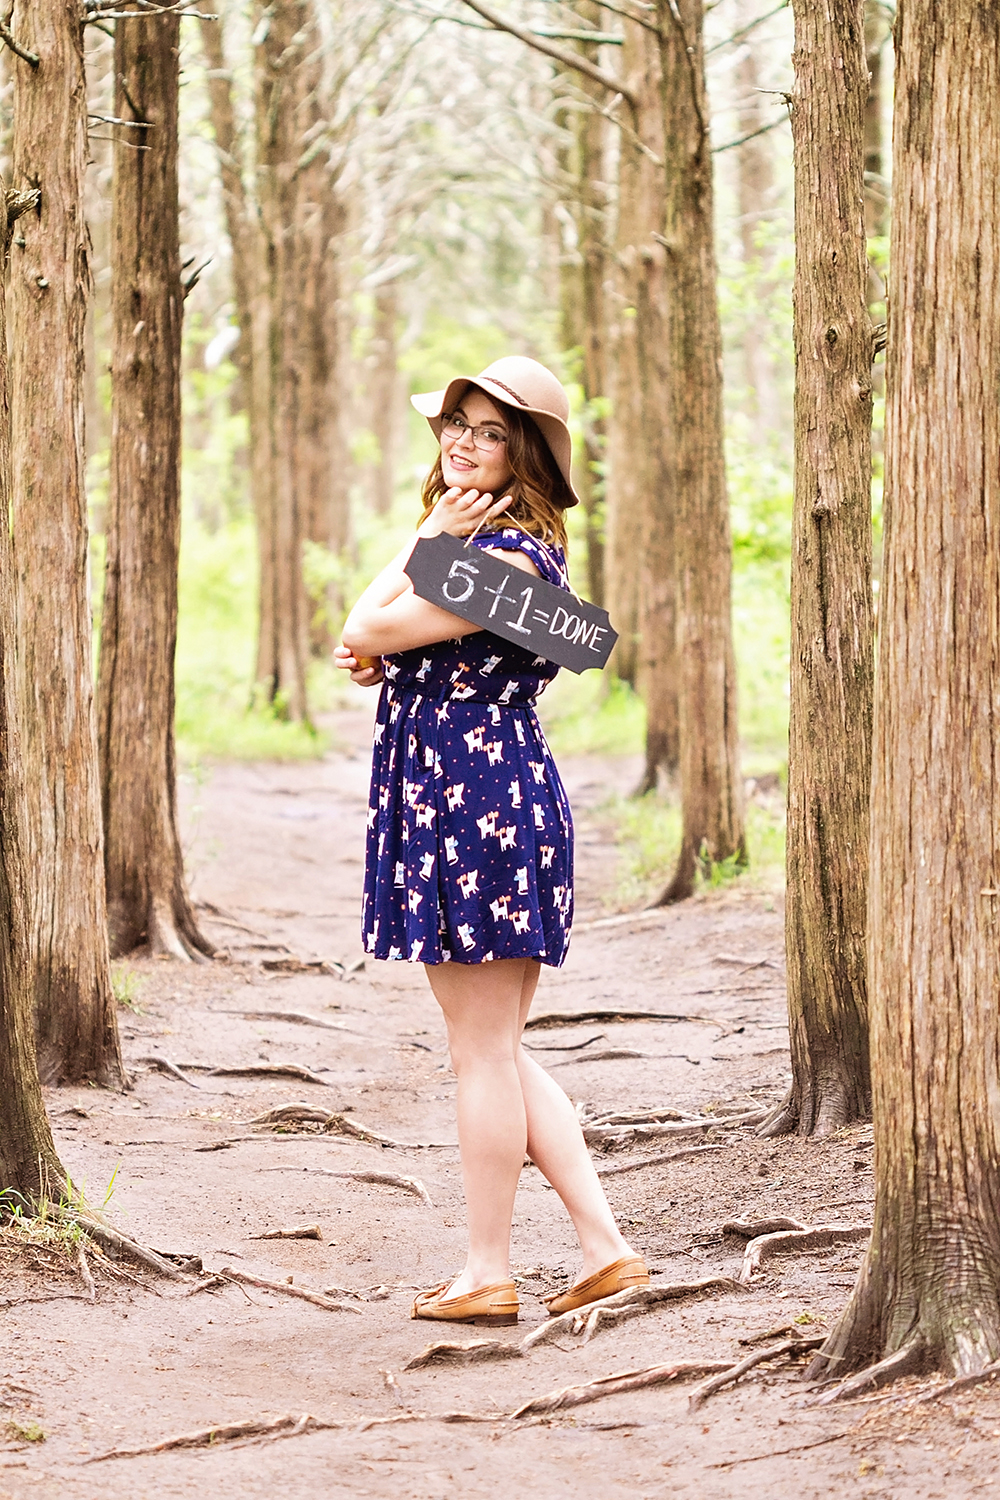 girl with sign in woods.jpg